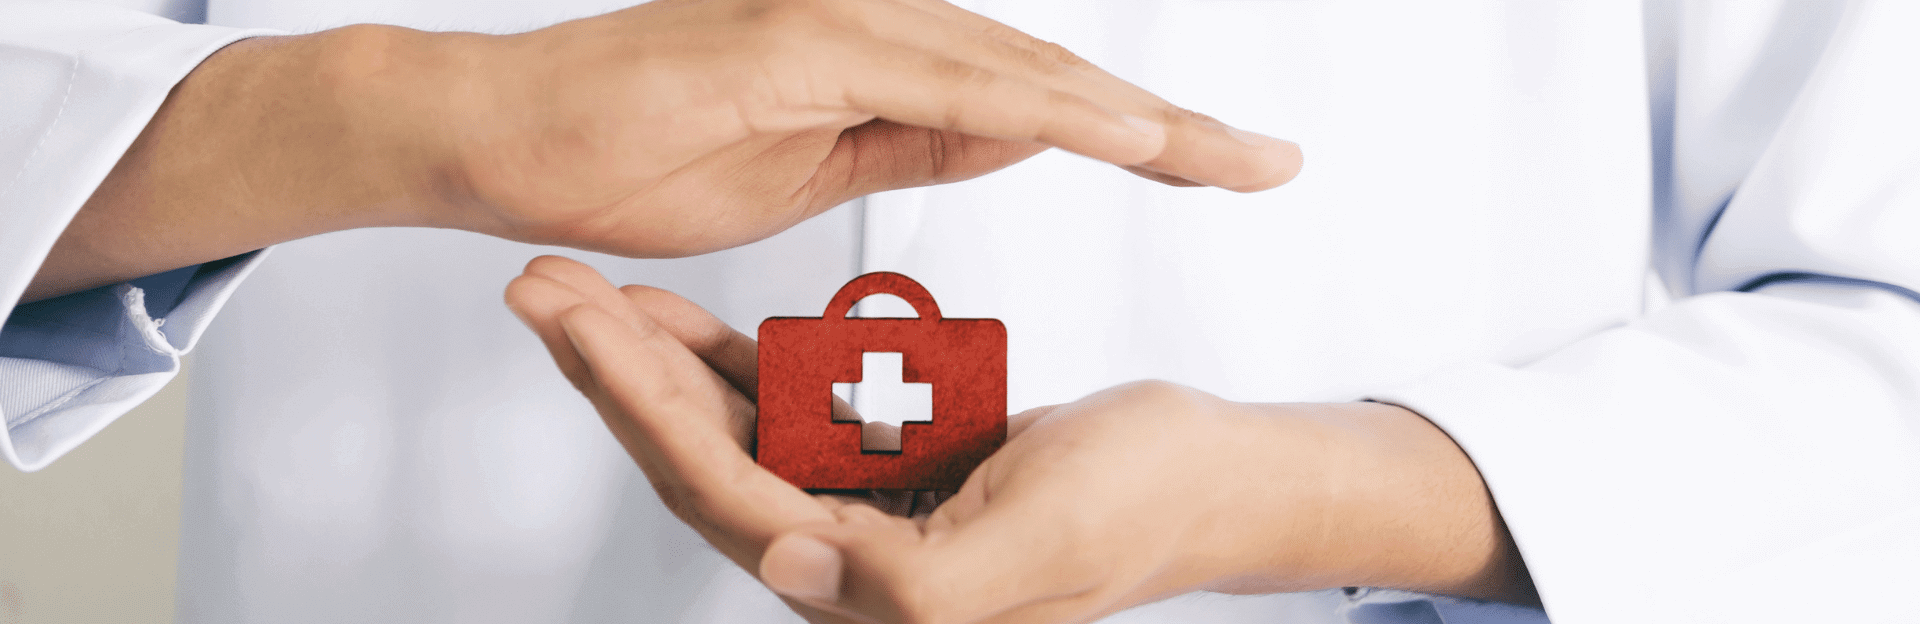 Benefits of health insurance: quality & affordable healthcare